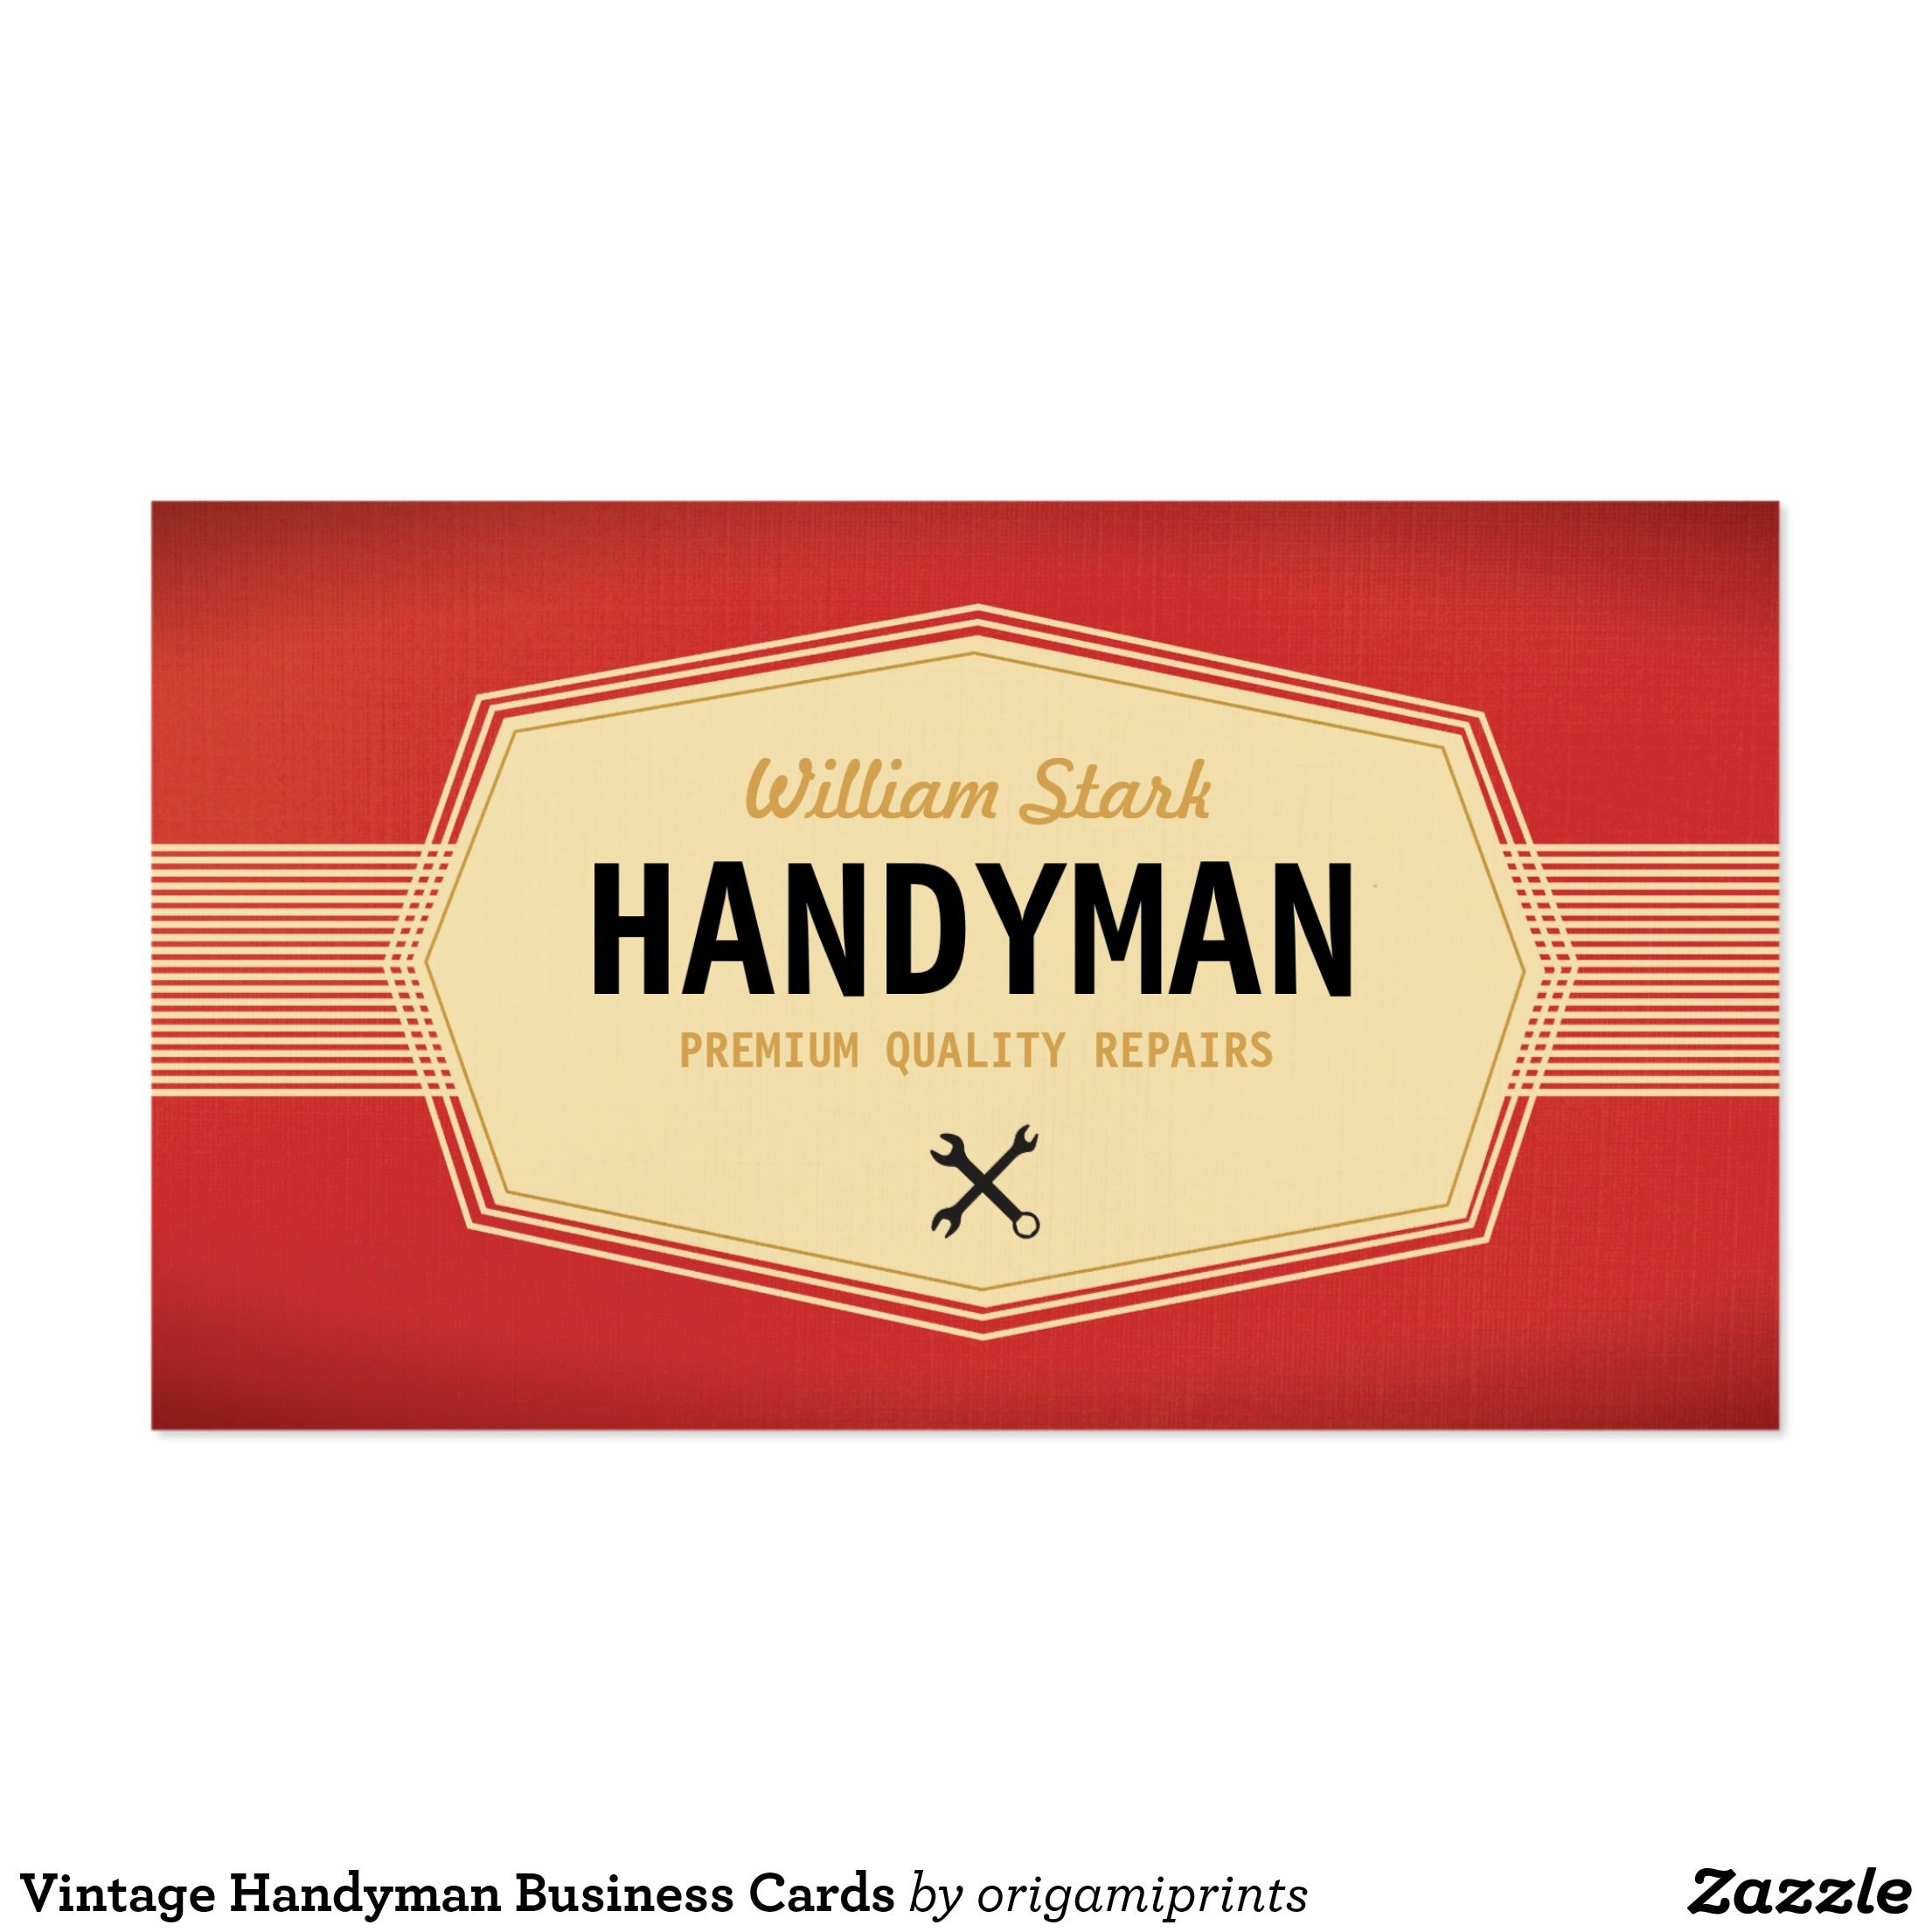 Vintage Handyman Business Cards | Handy man business ideas ...